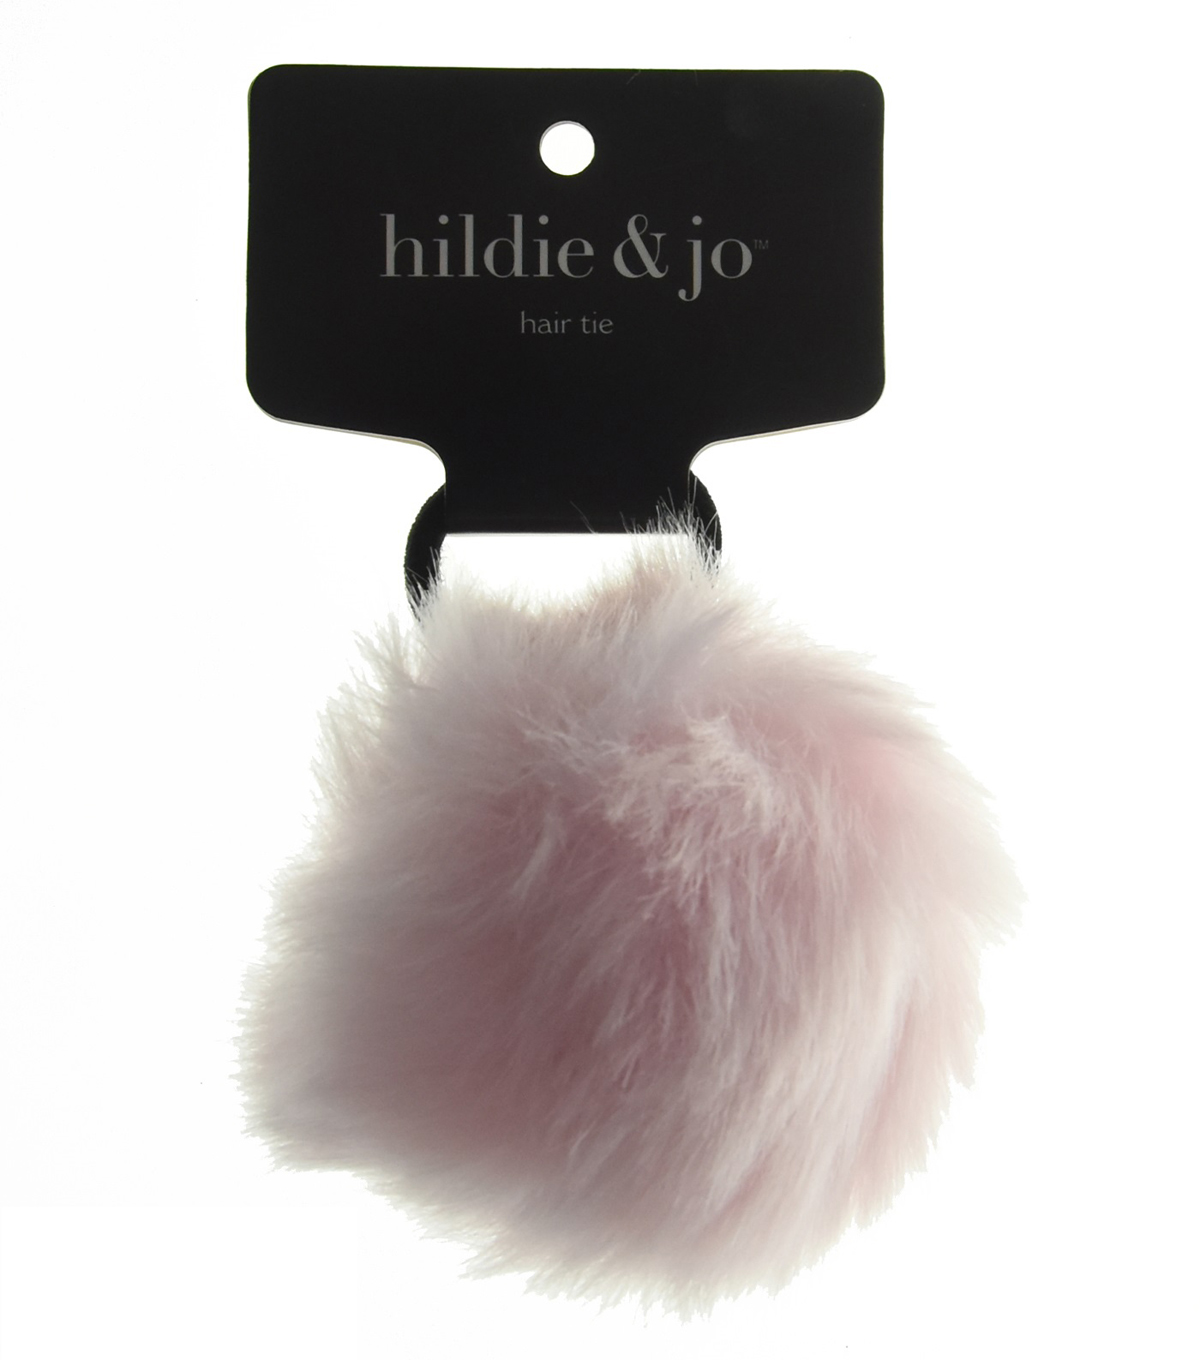 hildie & jo Pom Hair Tie-Light Pink